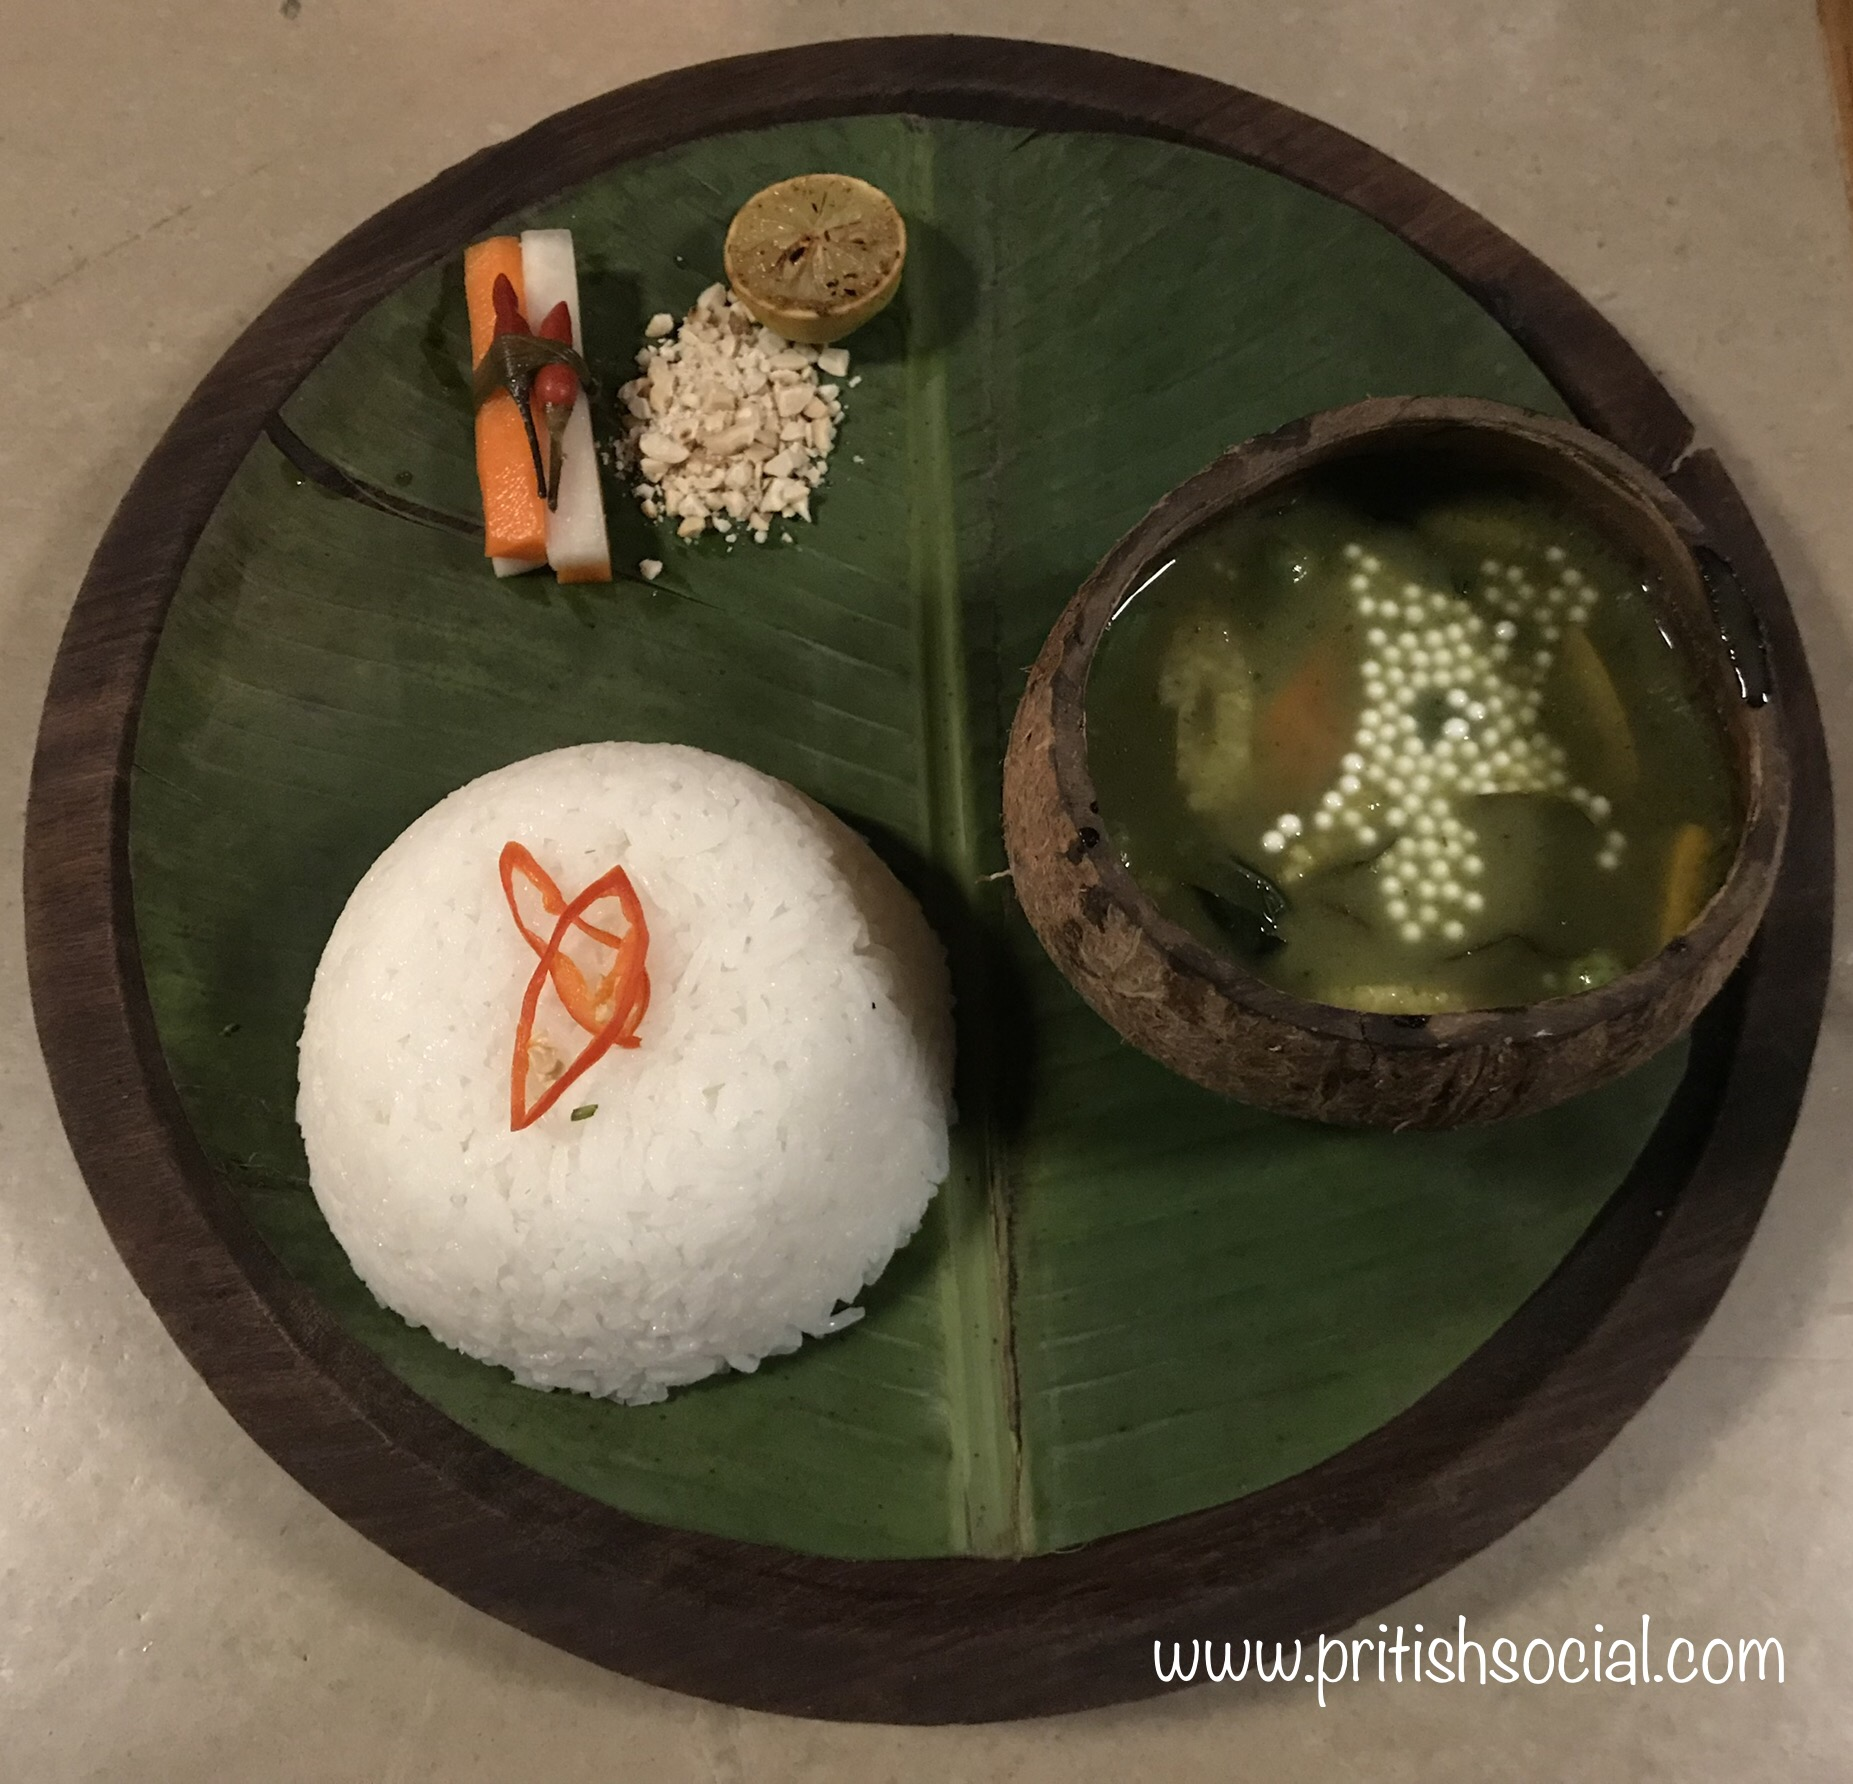 Thai Curry Food Affair 10th Street Jubilee Hills Restaurant.jpg